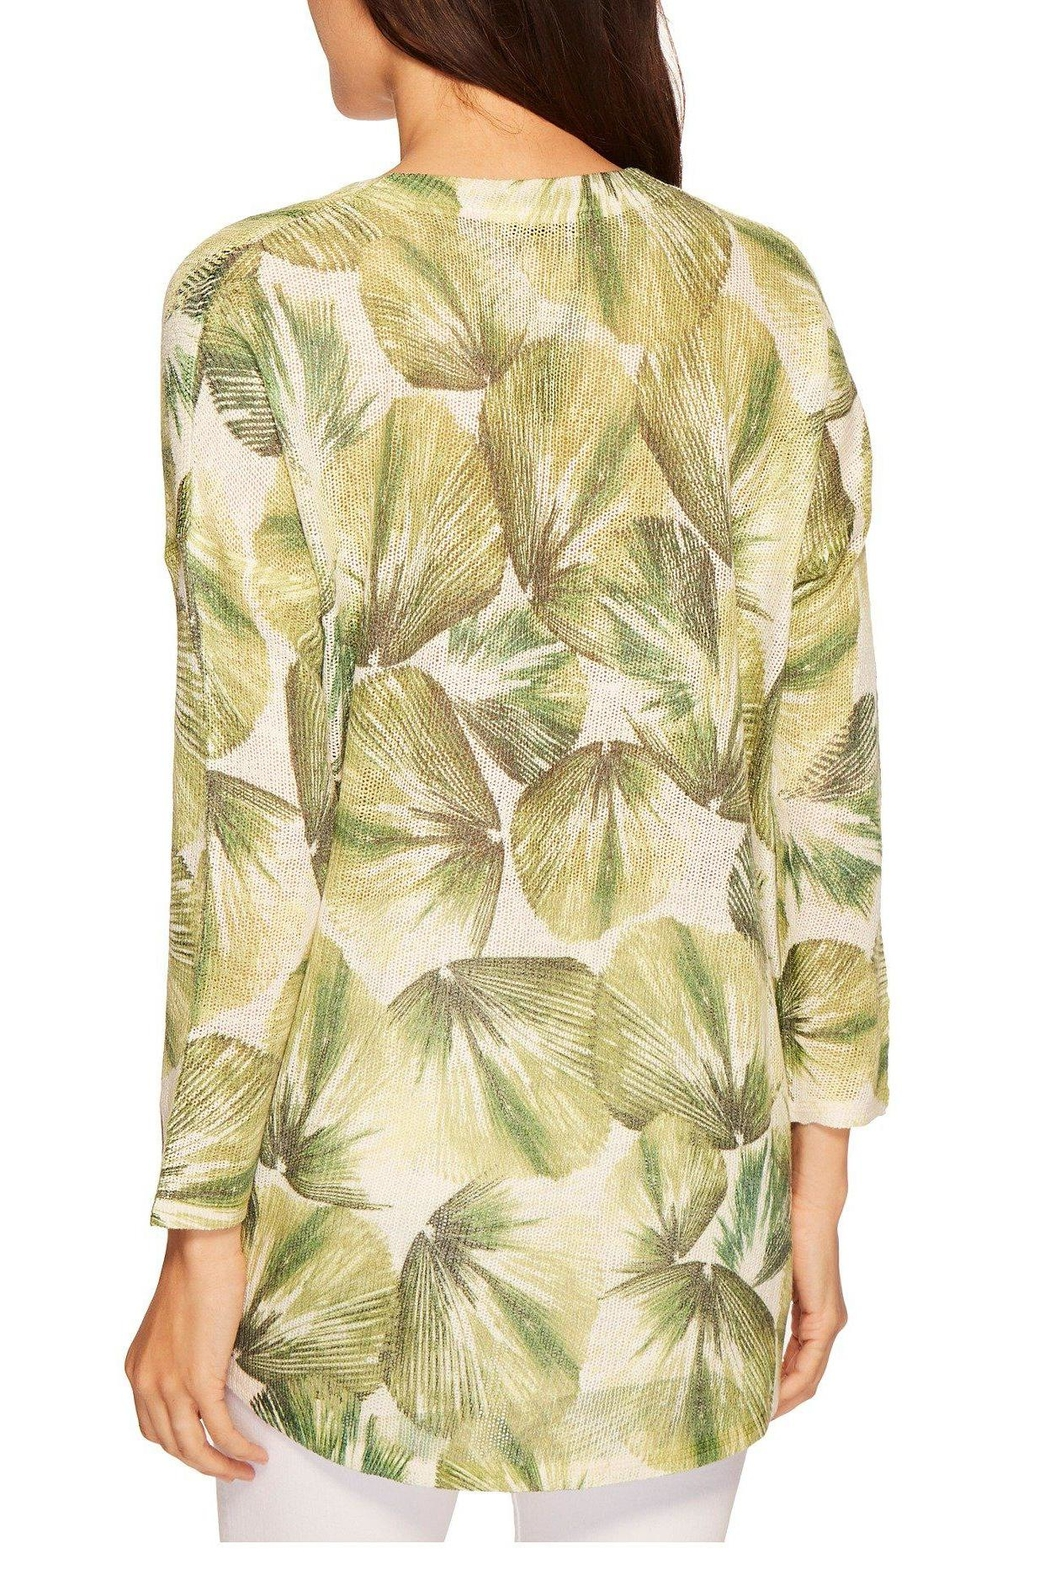 Nally & Millie Tropical Leaf Top - Front Full Image